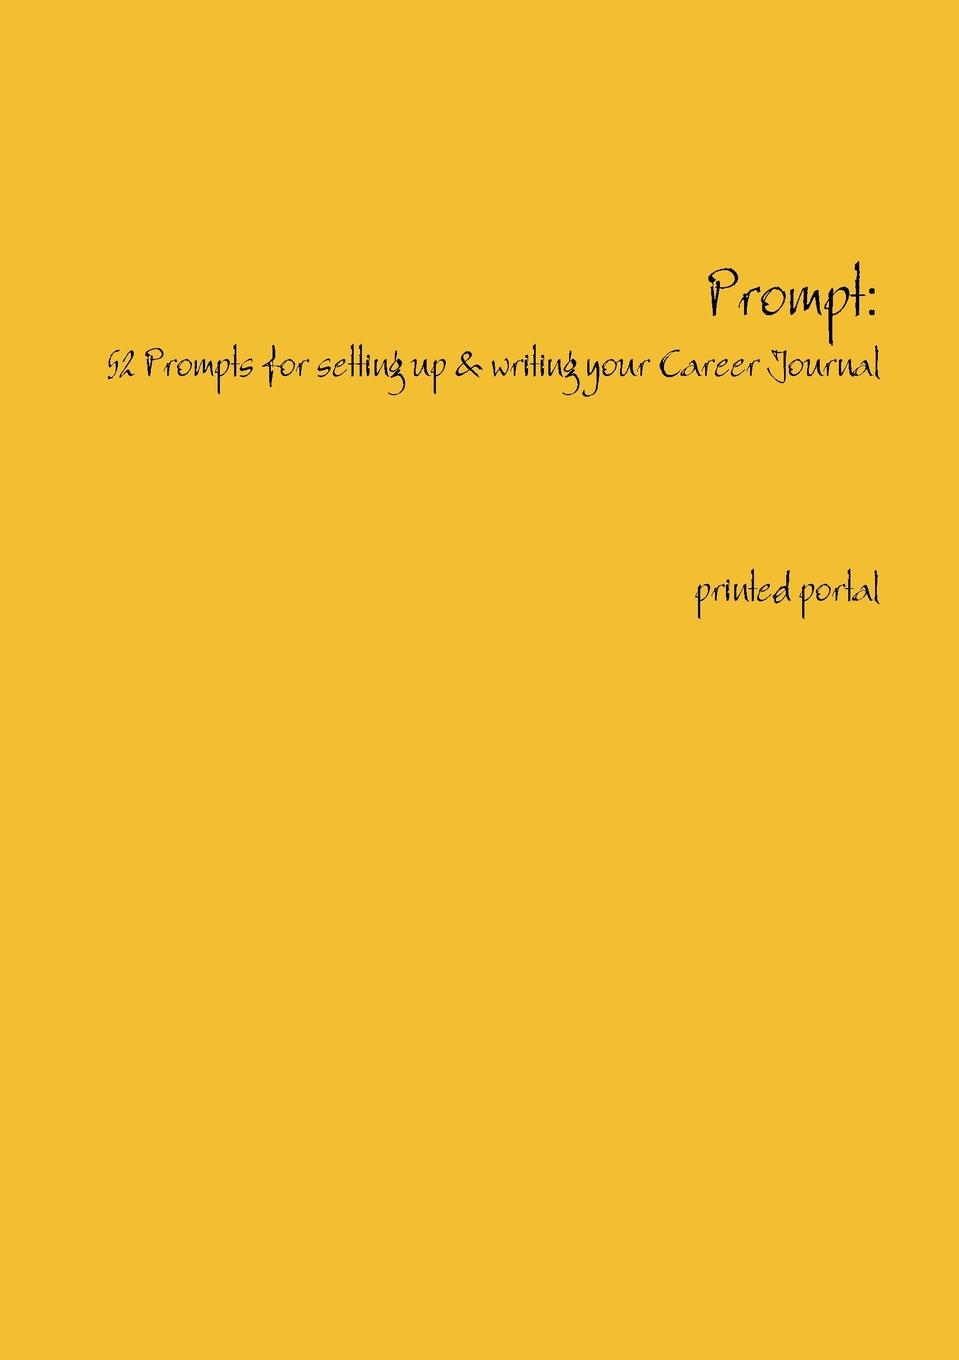 Prompt. How to Get Started with Writing a Career Journal 'Prompt: 52 Prompts for Setting up and Writing Your Career...